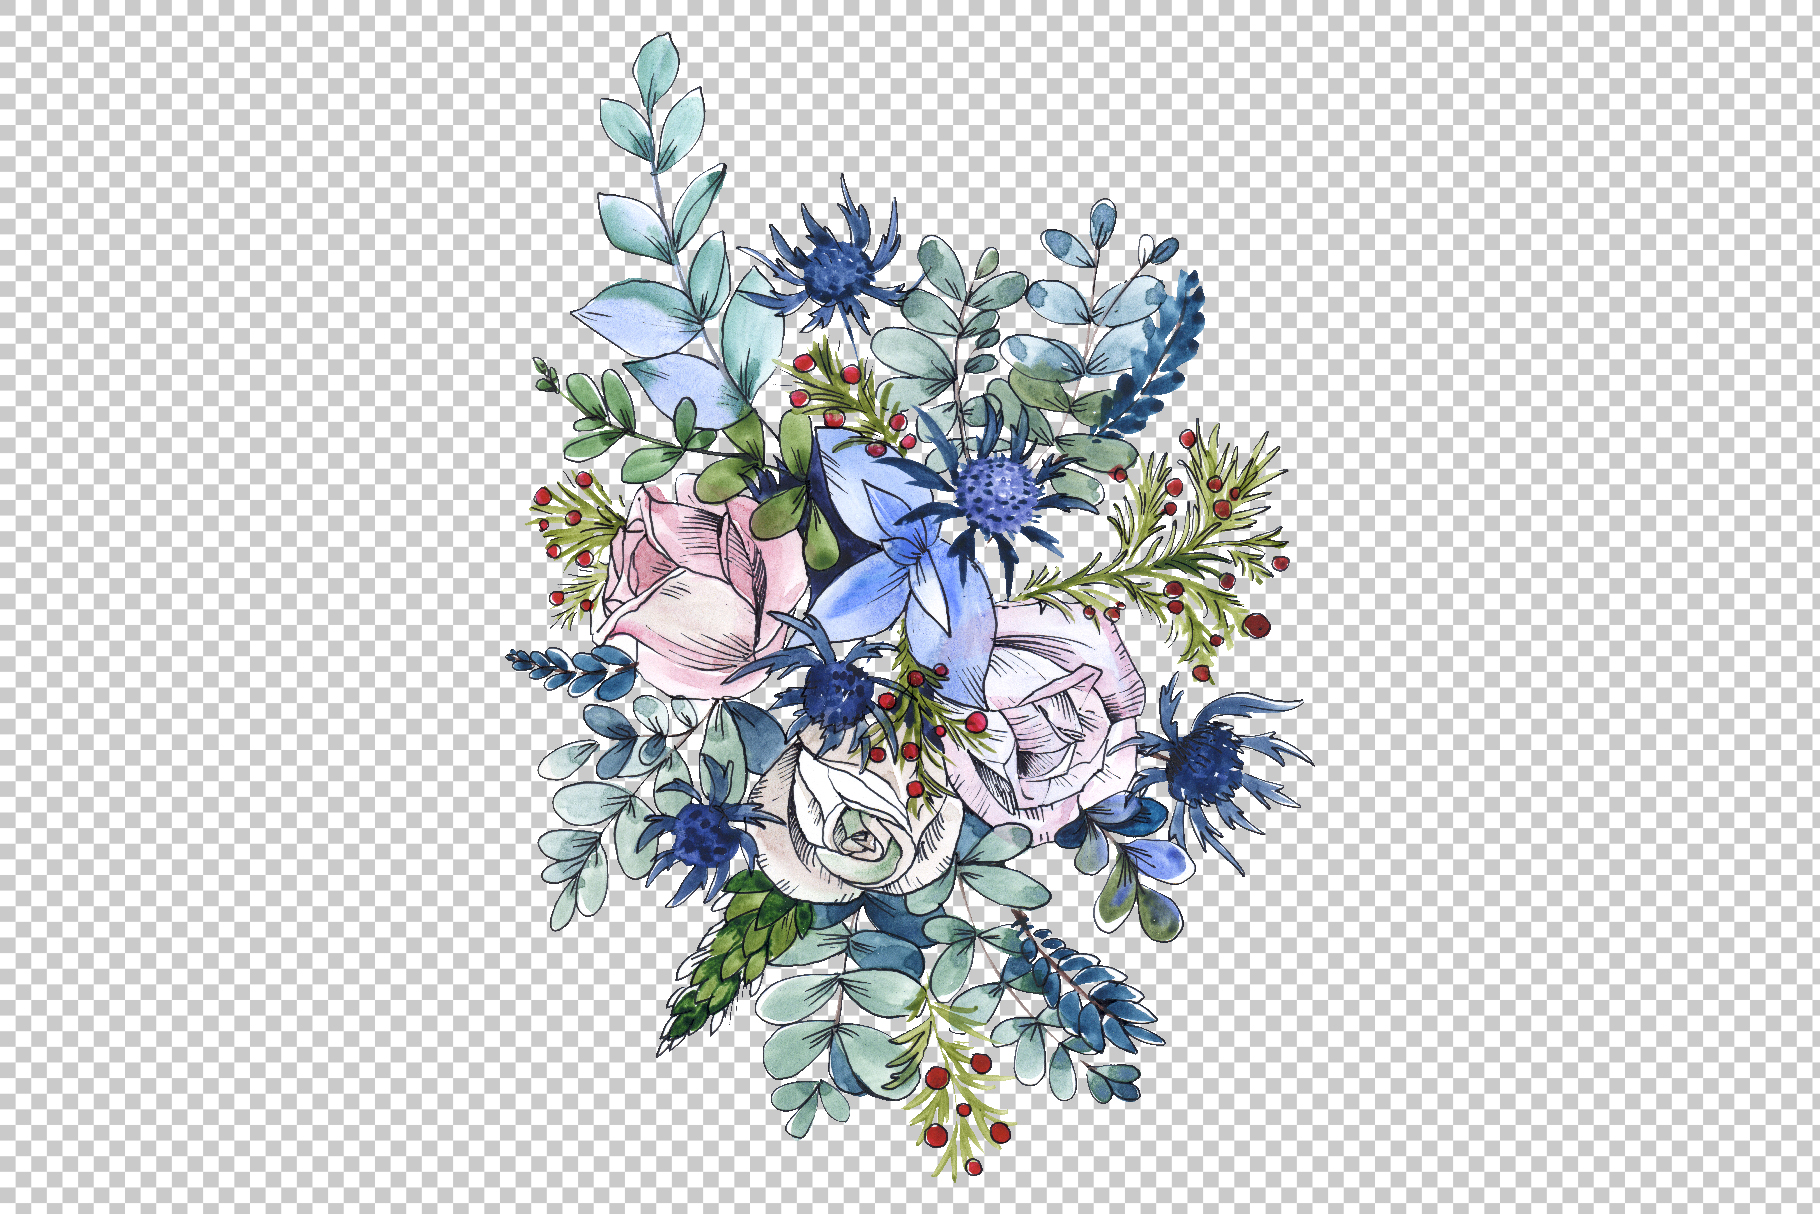 Bouquets with wildflowers, Roses, leaves Watercolor png example image 5